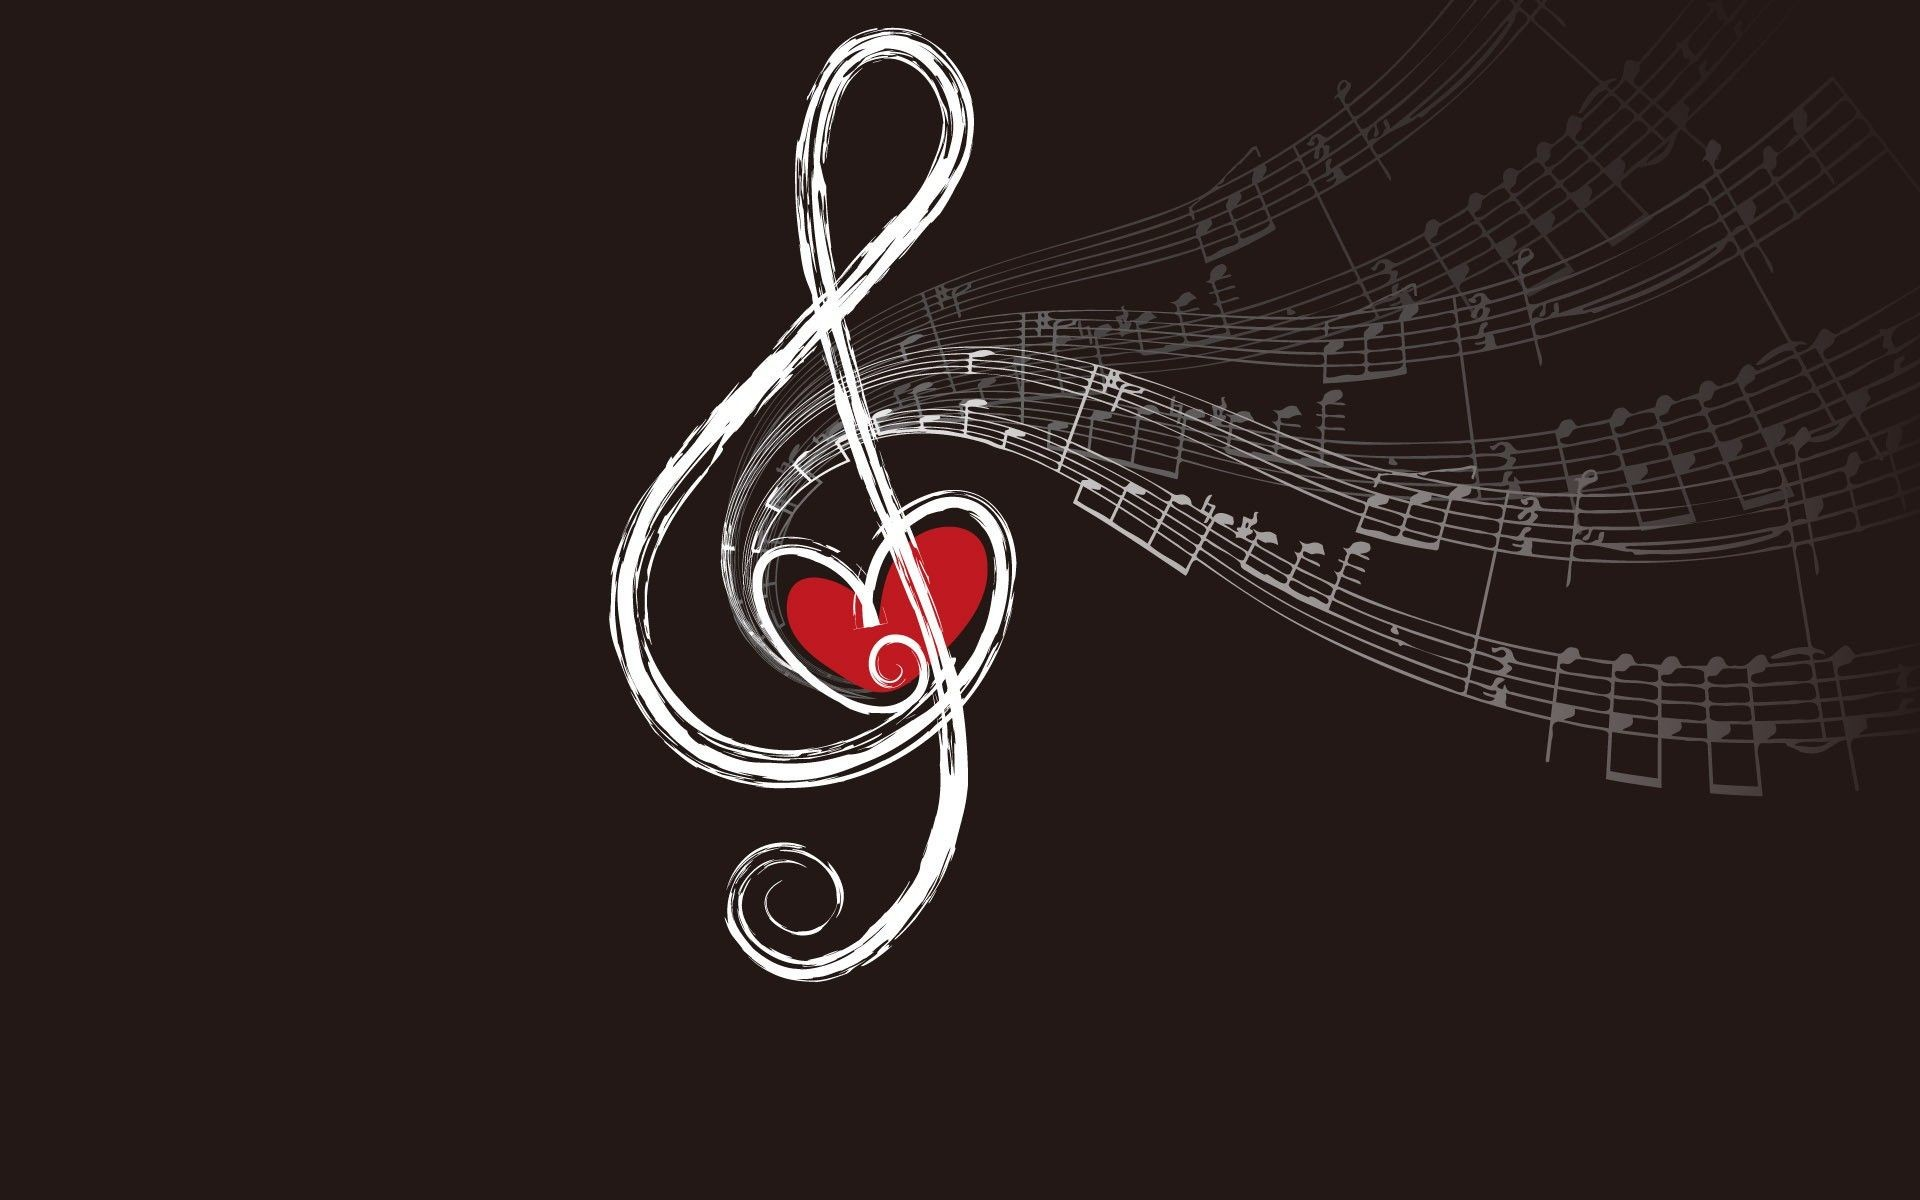 Res: 1920x1200, love-music-wallpaper-Love-Music-Notes-Brown-Background-Fresh-New-Hd- Wallpaper-.jpg (1920×1200)